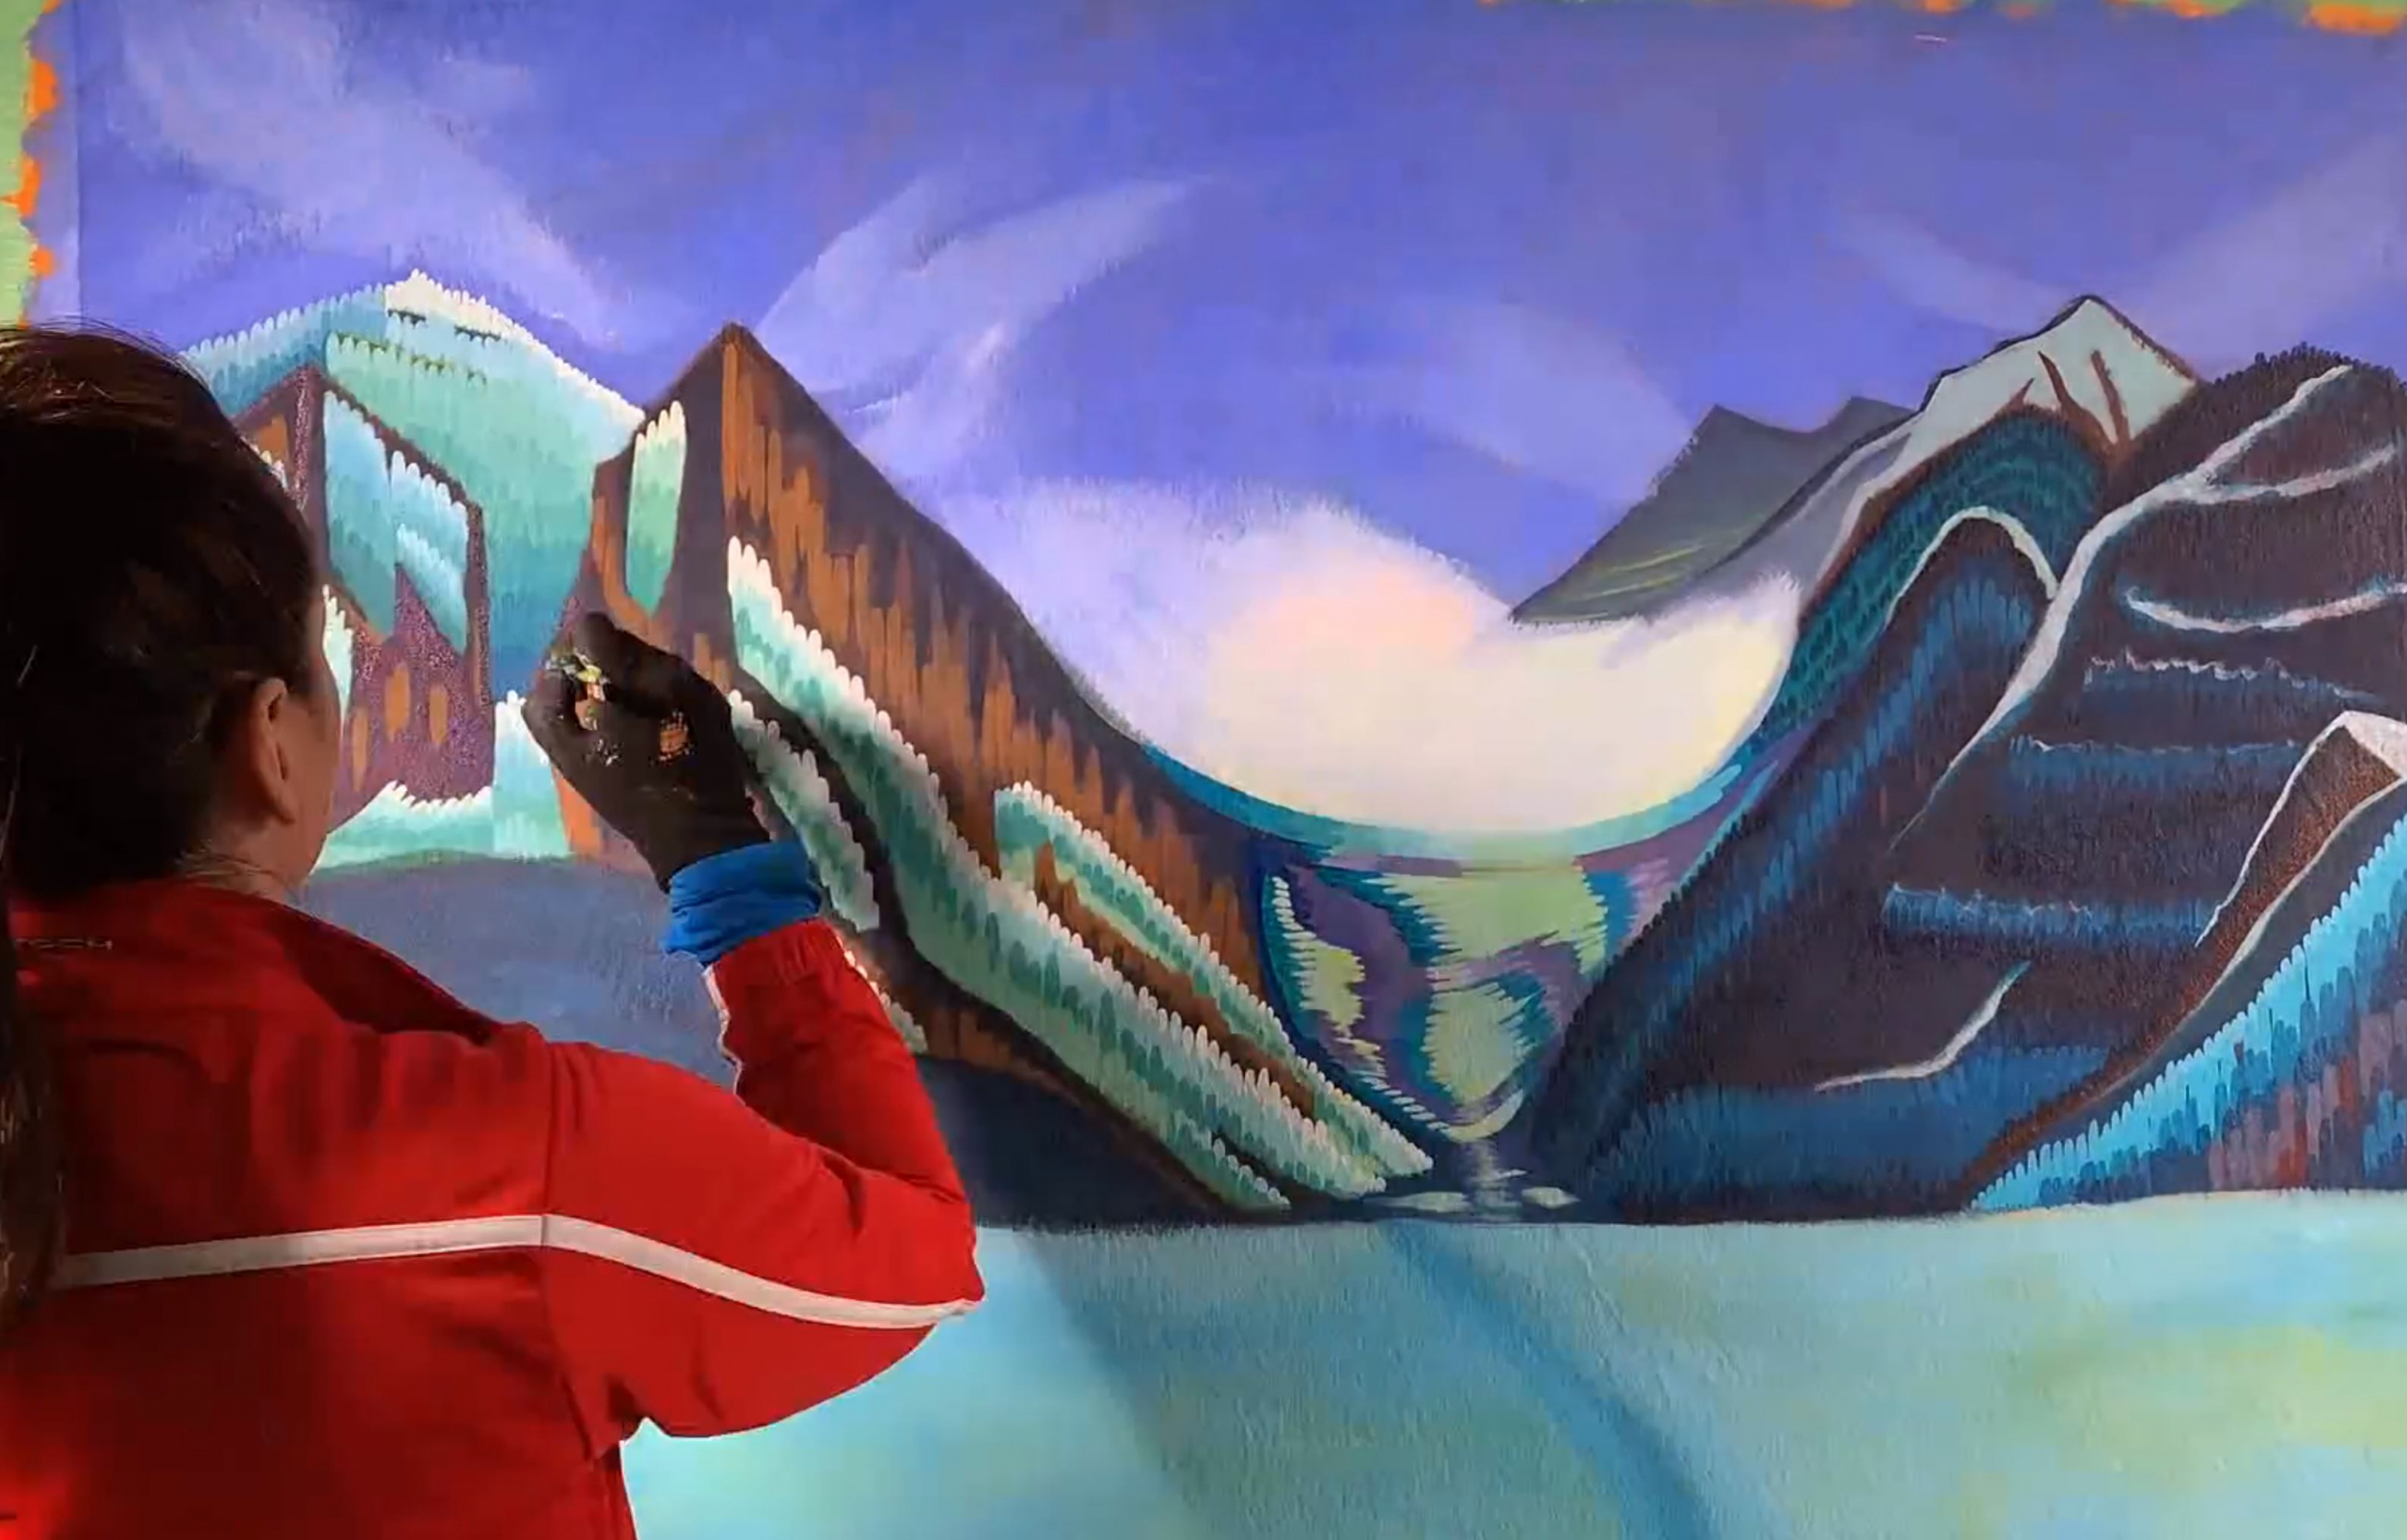 video of Canadian artist making a painting